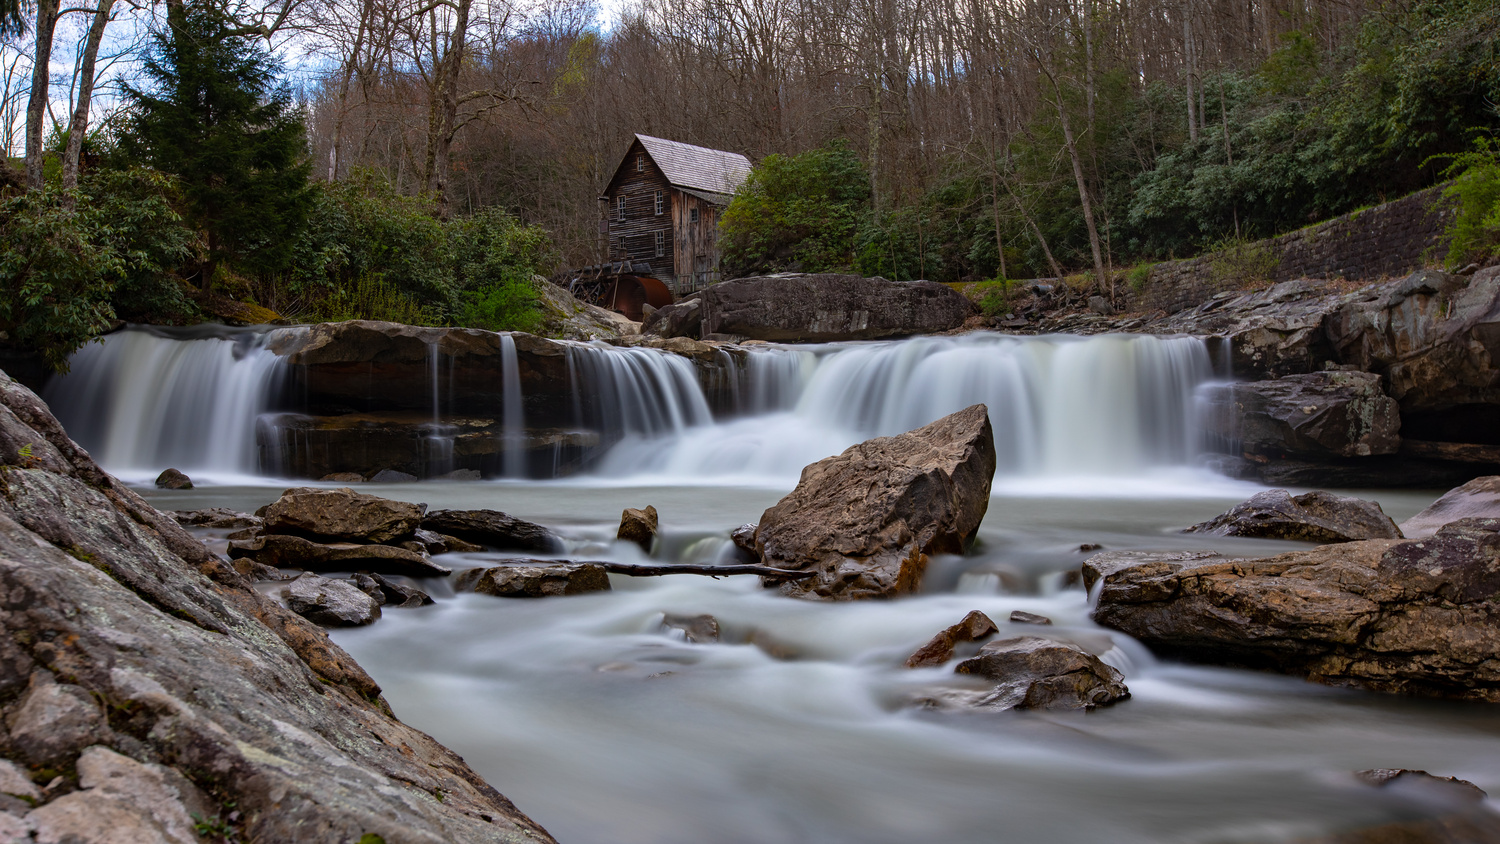 Old Mill and the River by Patrick Zeller